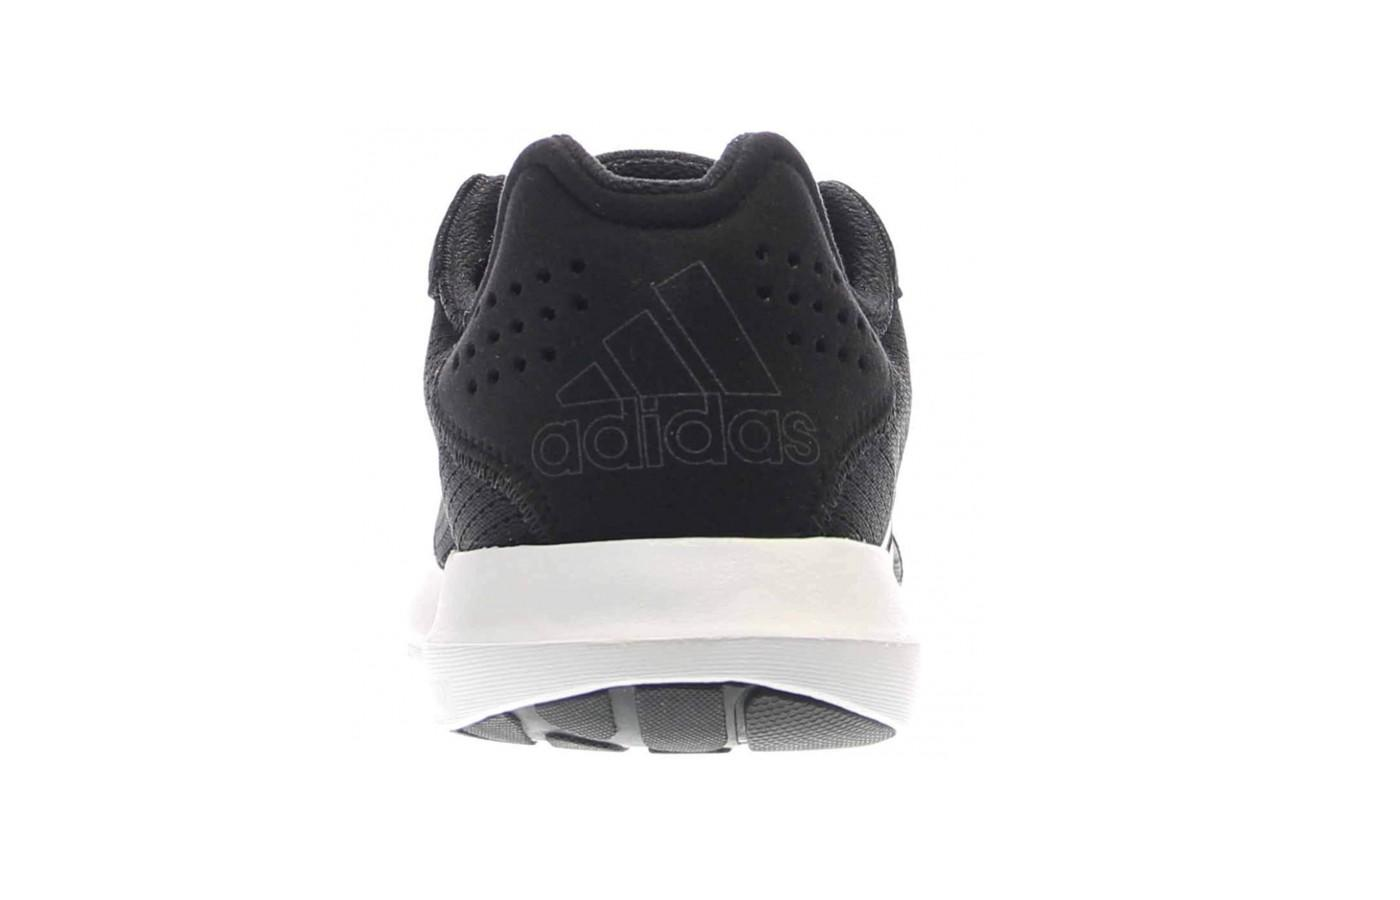 separation shoes cee41 9ff85 ... heres a look at the heel of the Adidas Element Athletic